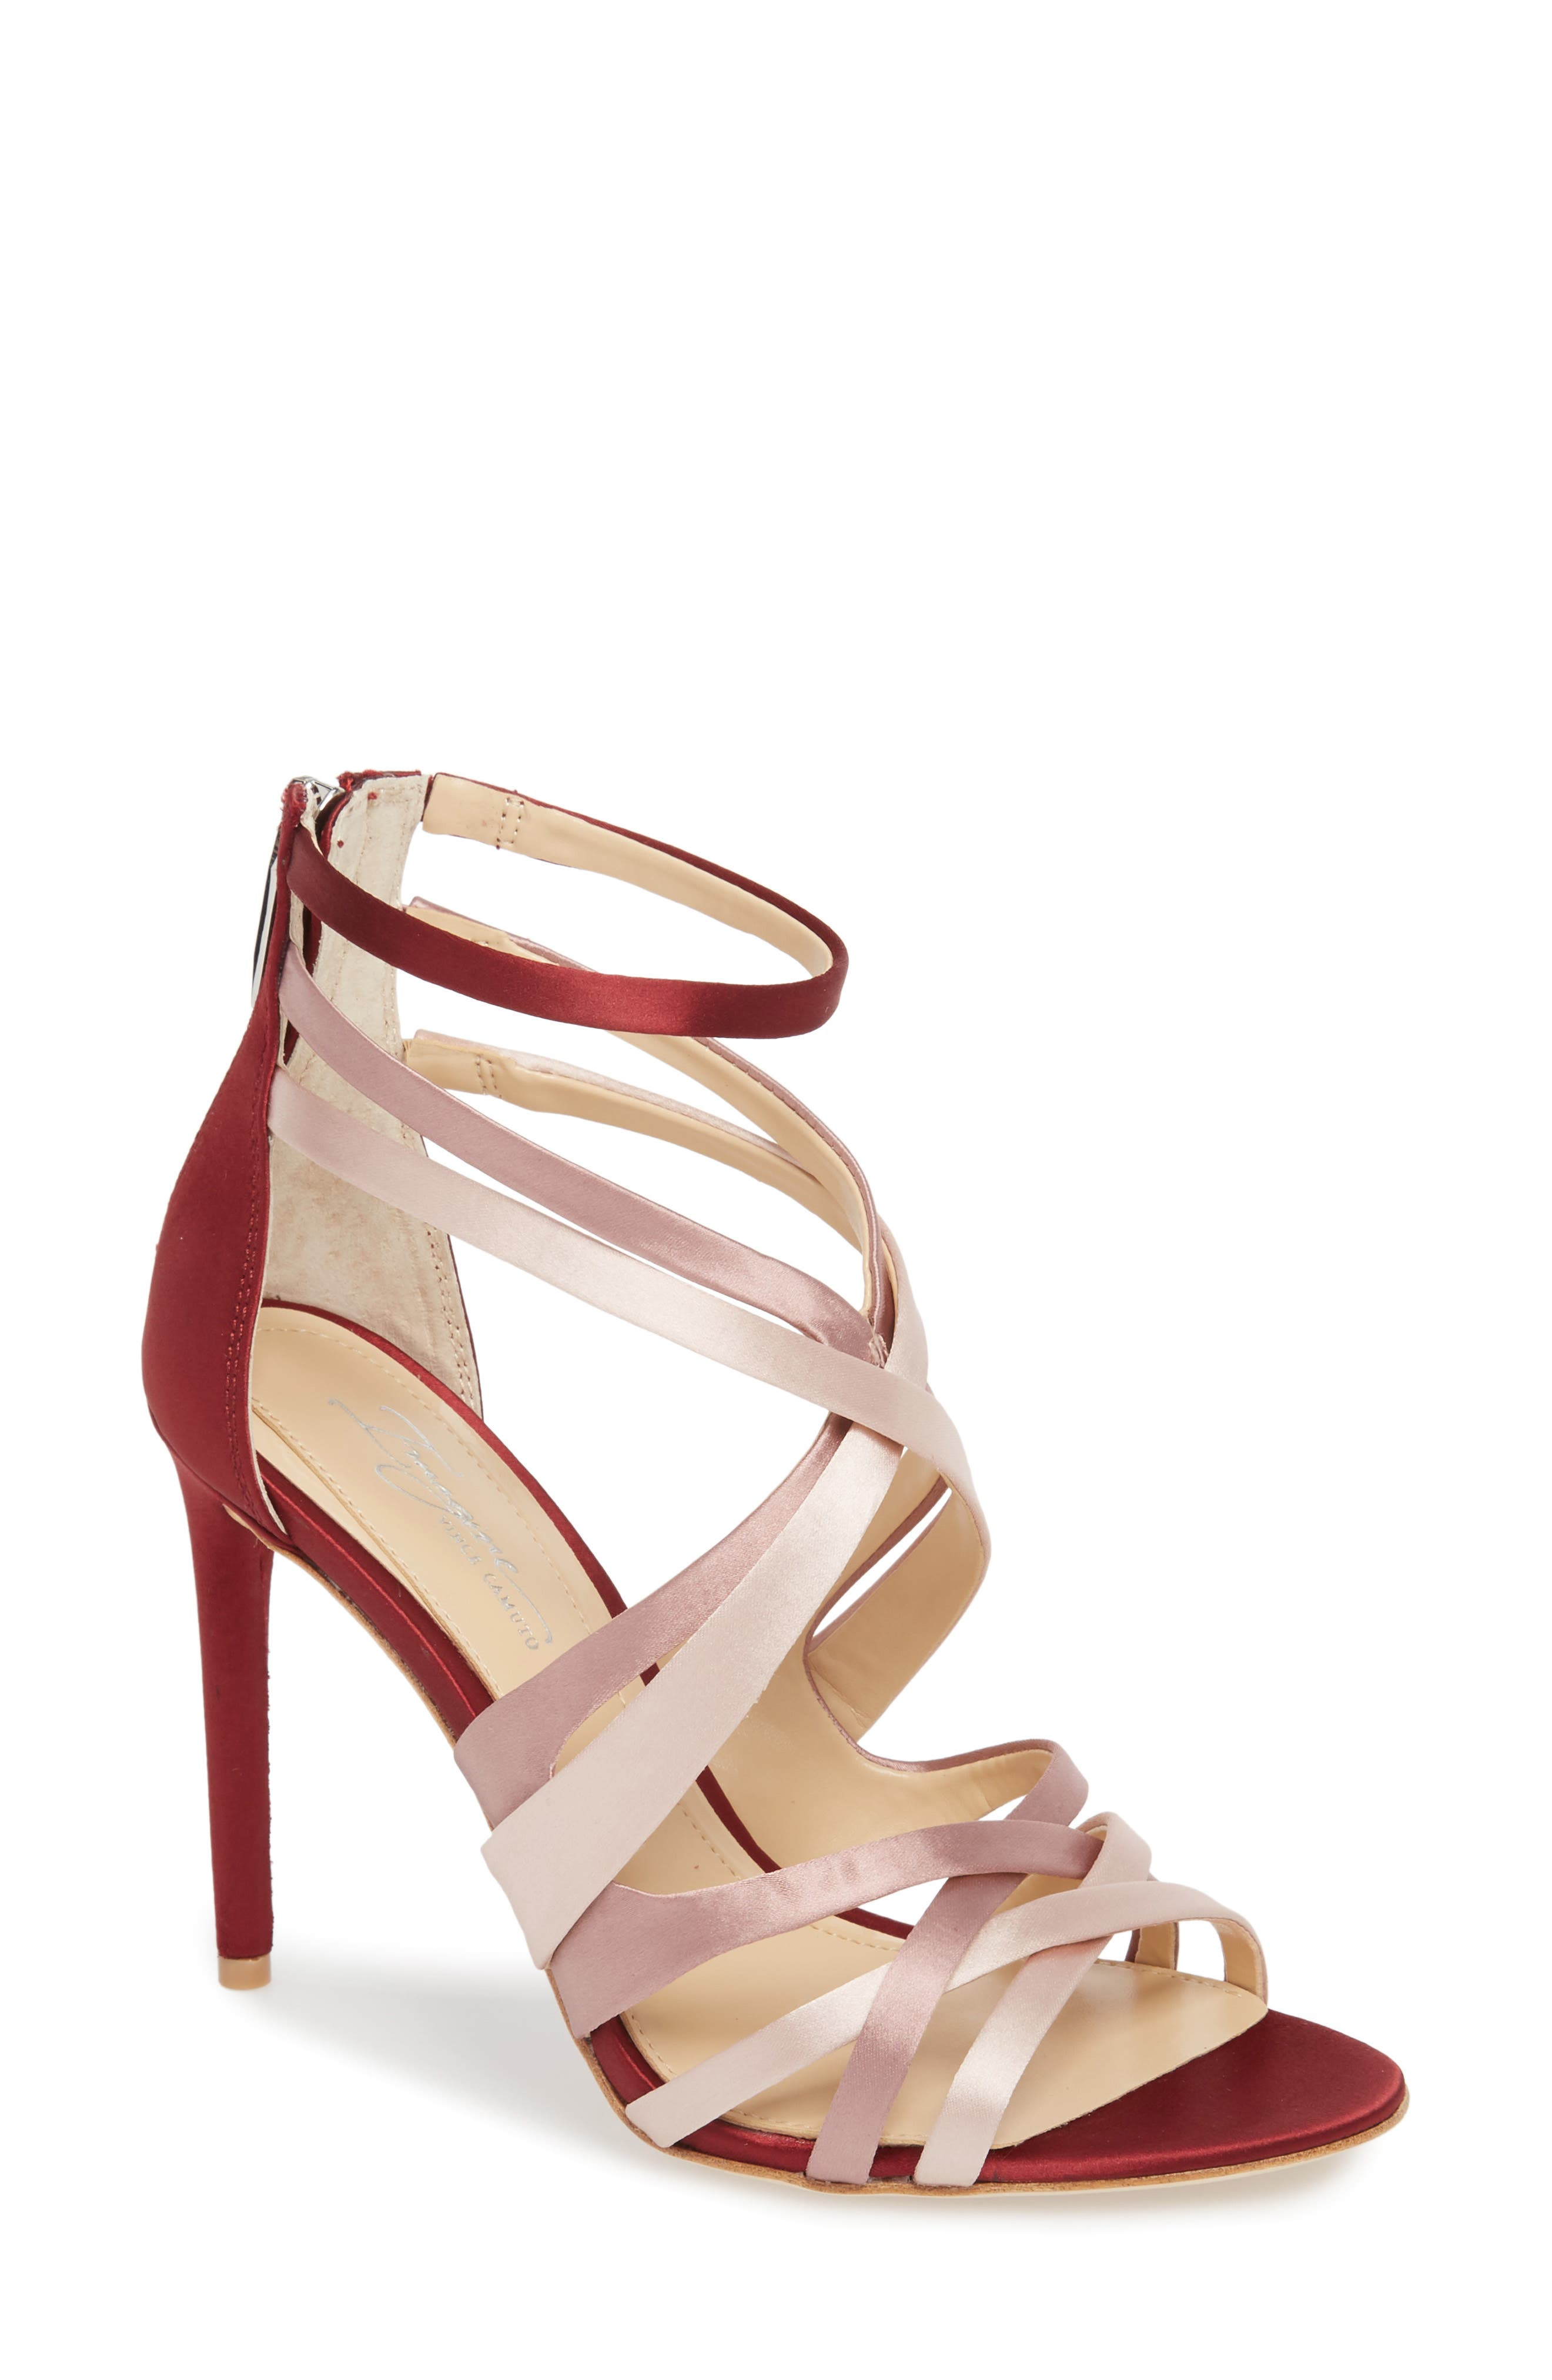 Imagine By Vince Camuto Ress Sandal